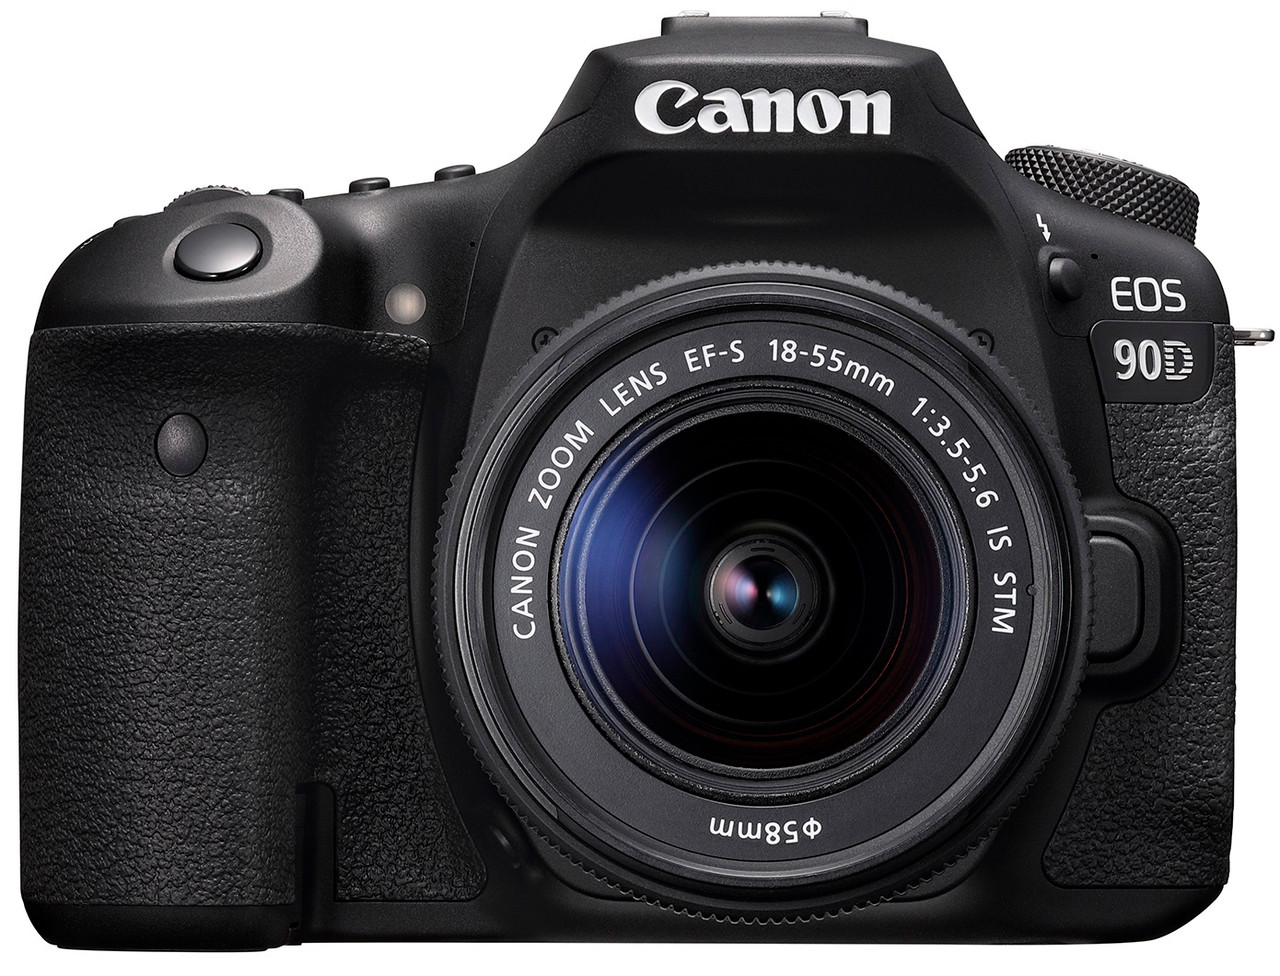 Canon EOS 90D Digital SLR Camera with EF-S 18-55mm IS STM Lens